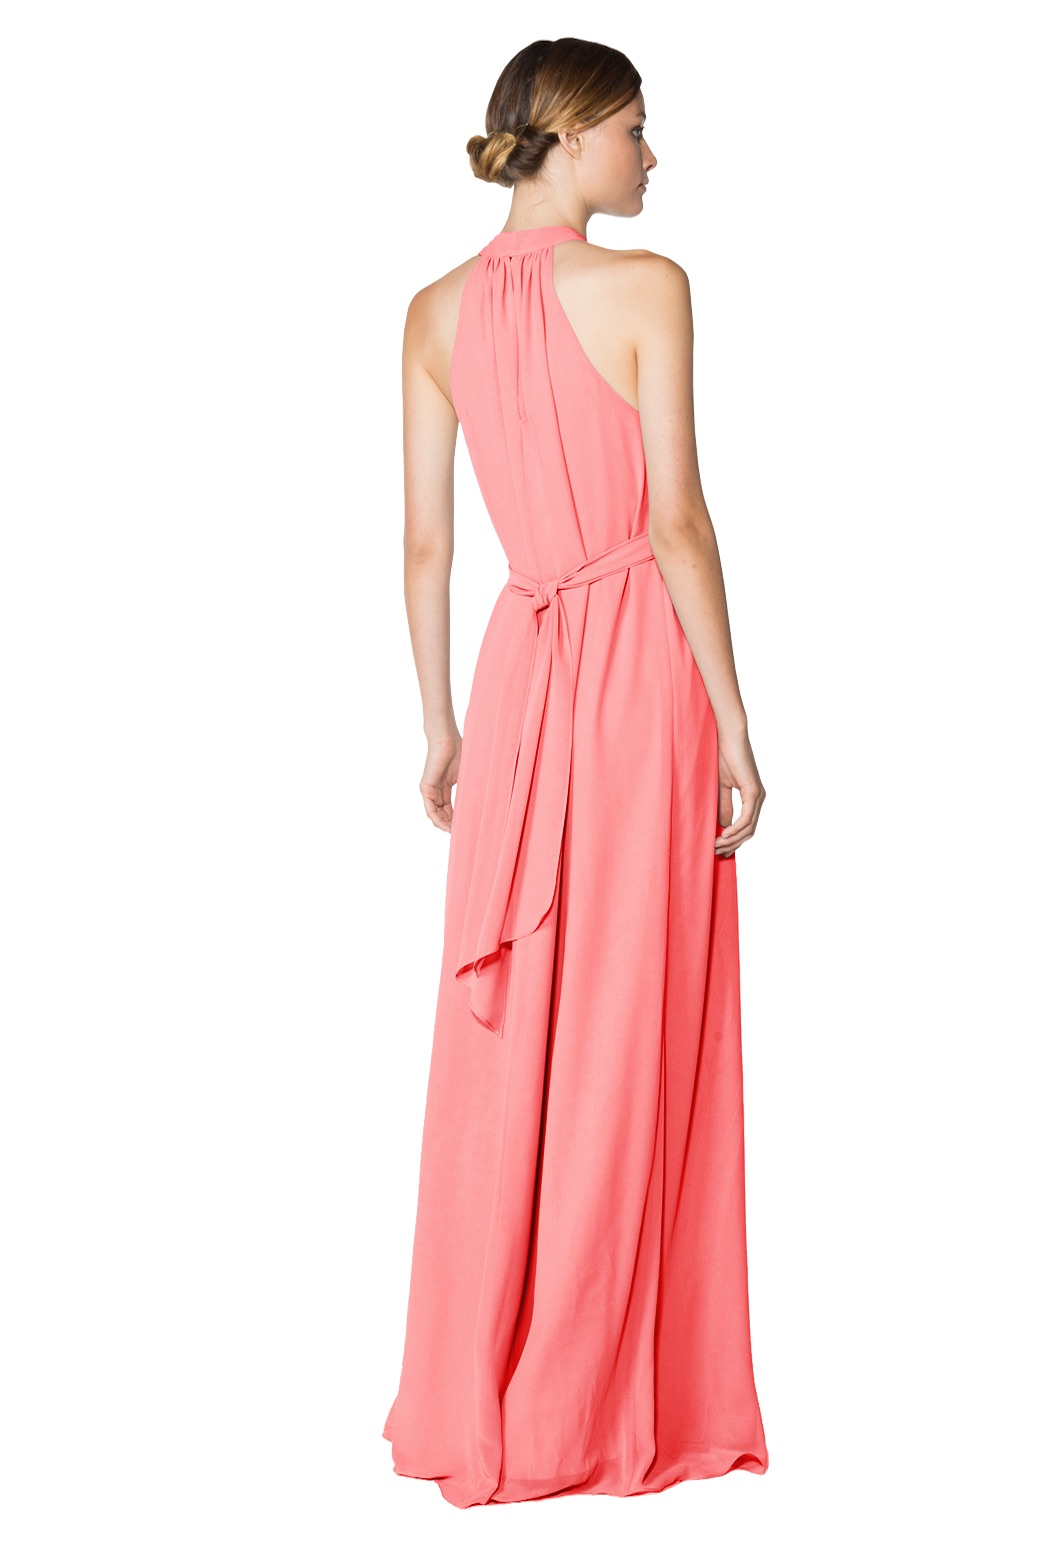 Chiffon style dress with sash Elena by Joanna August